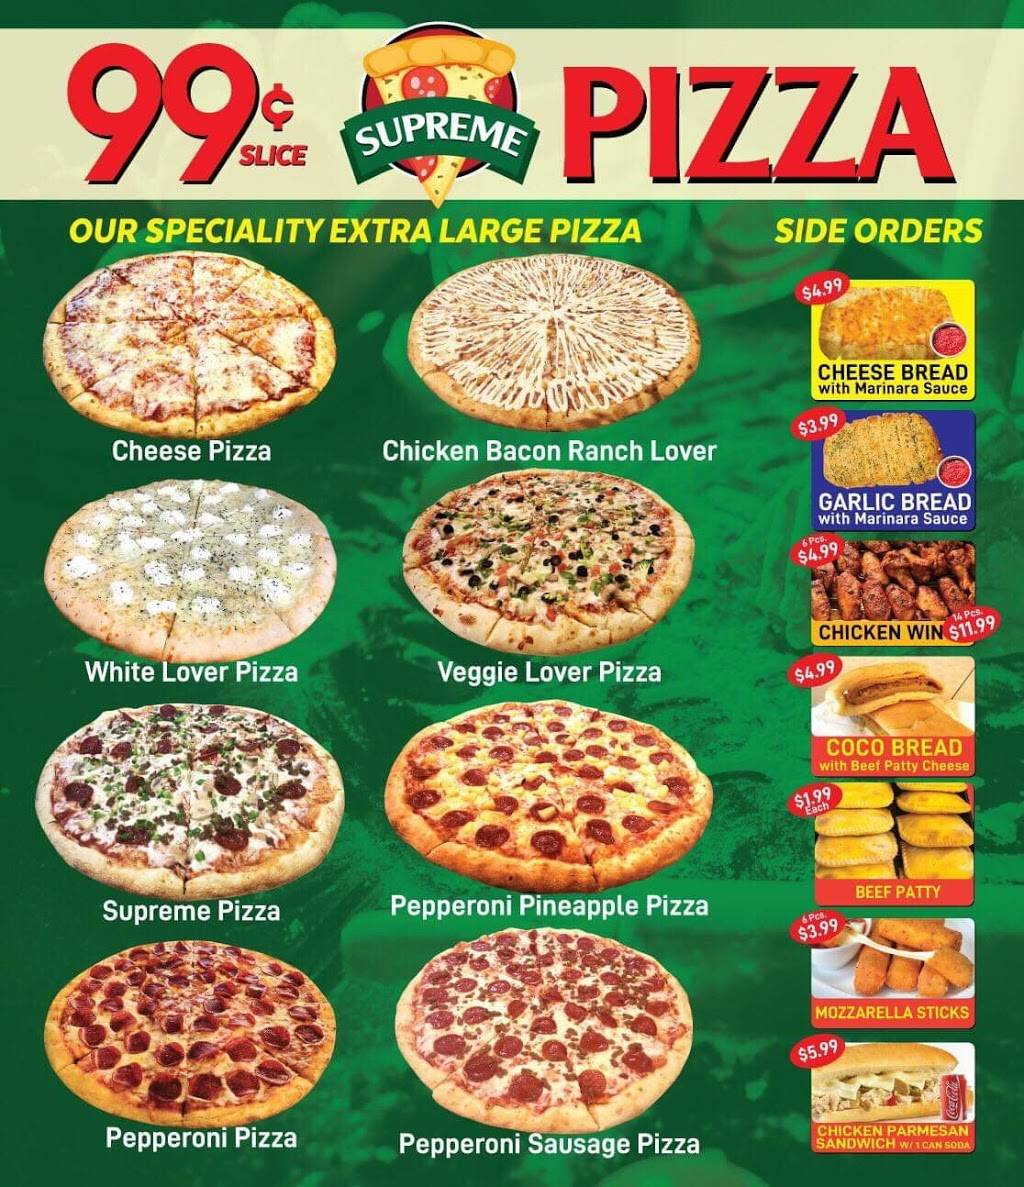 99 cent supreme pizza | restaurant | 1276 Fulton St, Brooklyn, NY 11216, USA